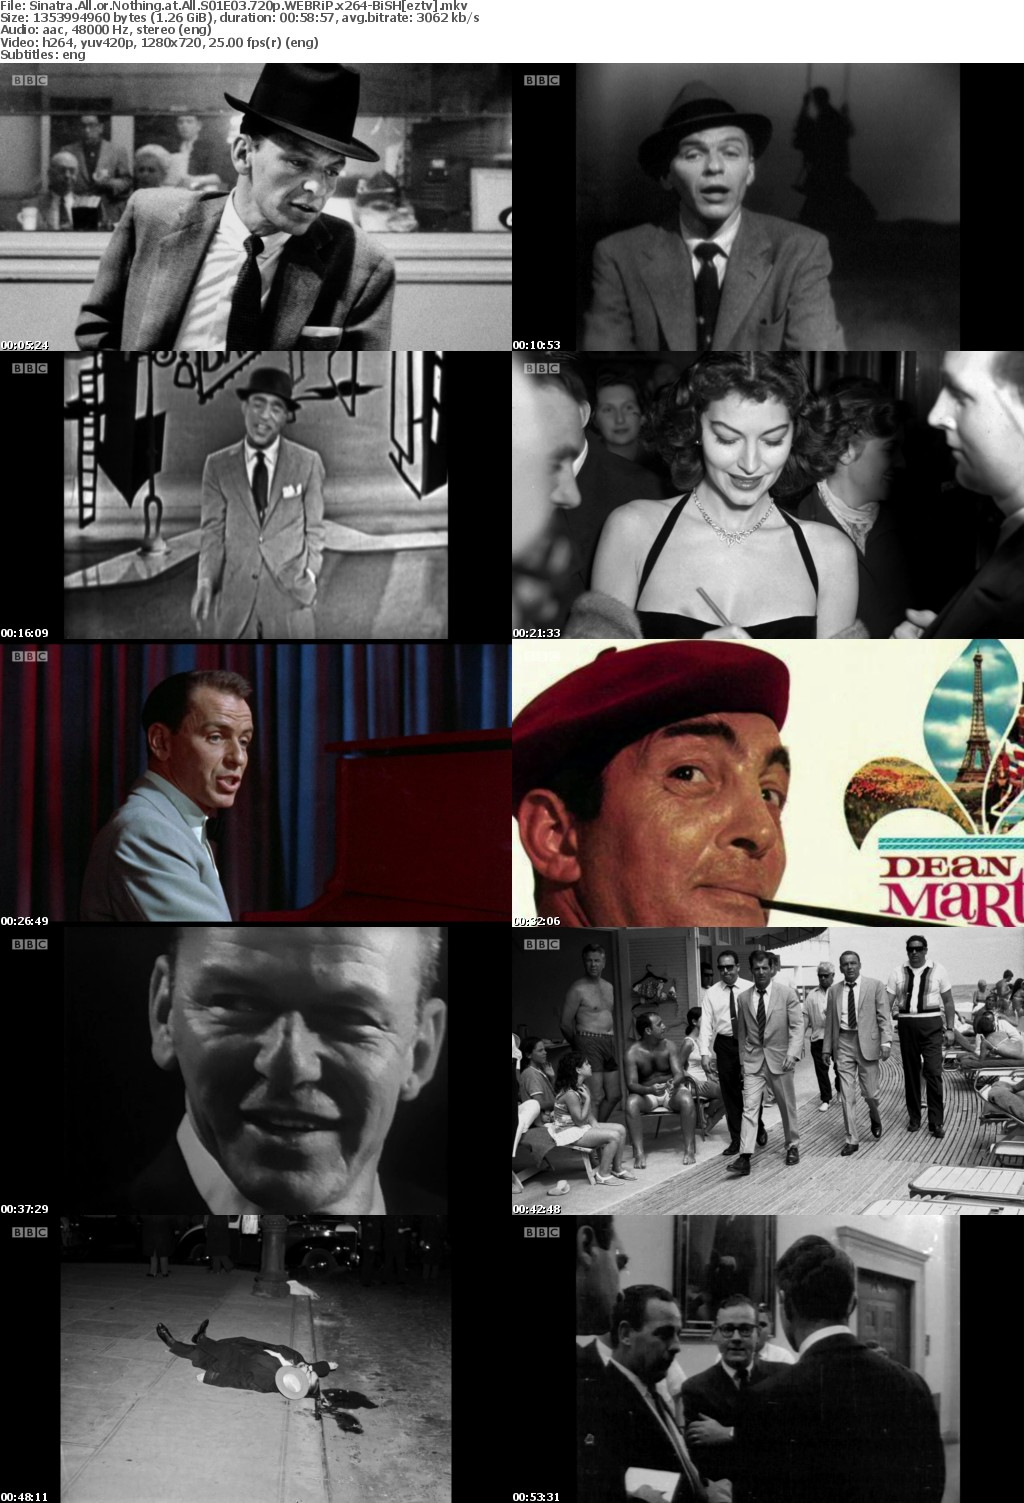 Sinatra All or Nothing at All S01E03 720p WEBRiP x264-BiSH